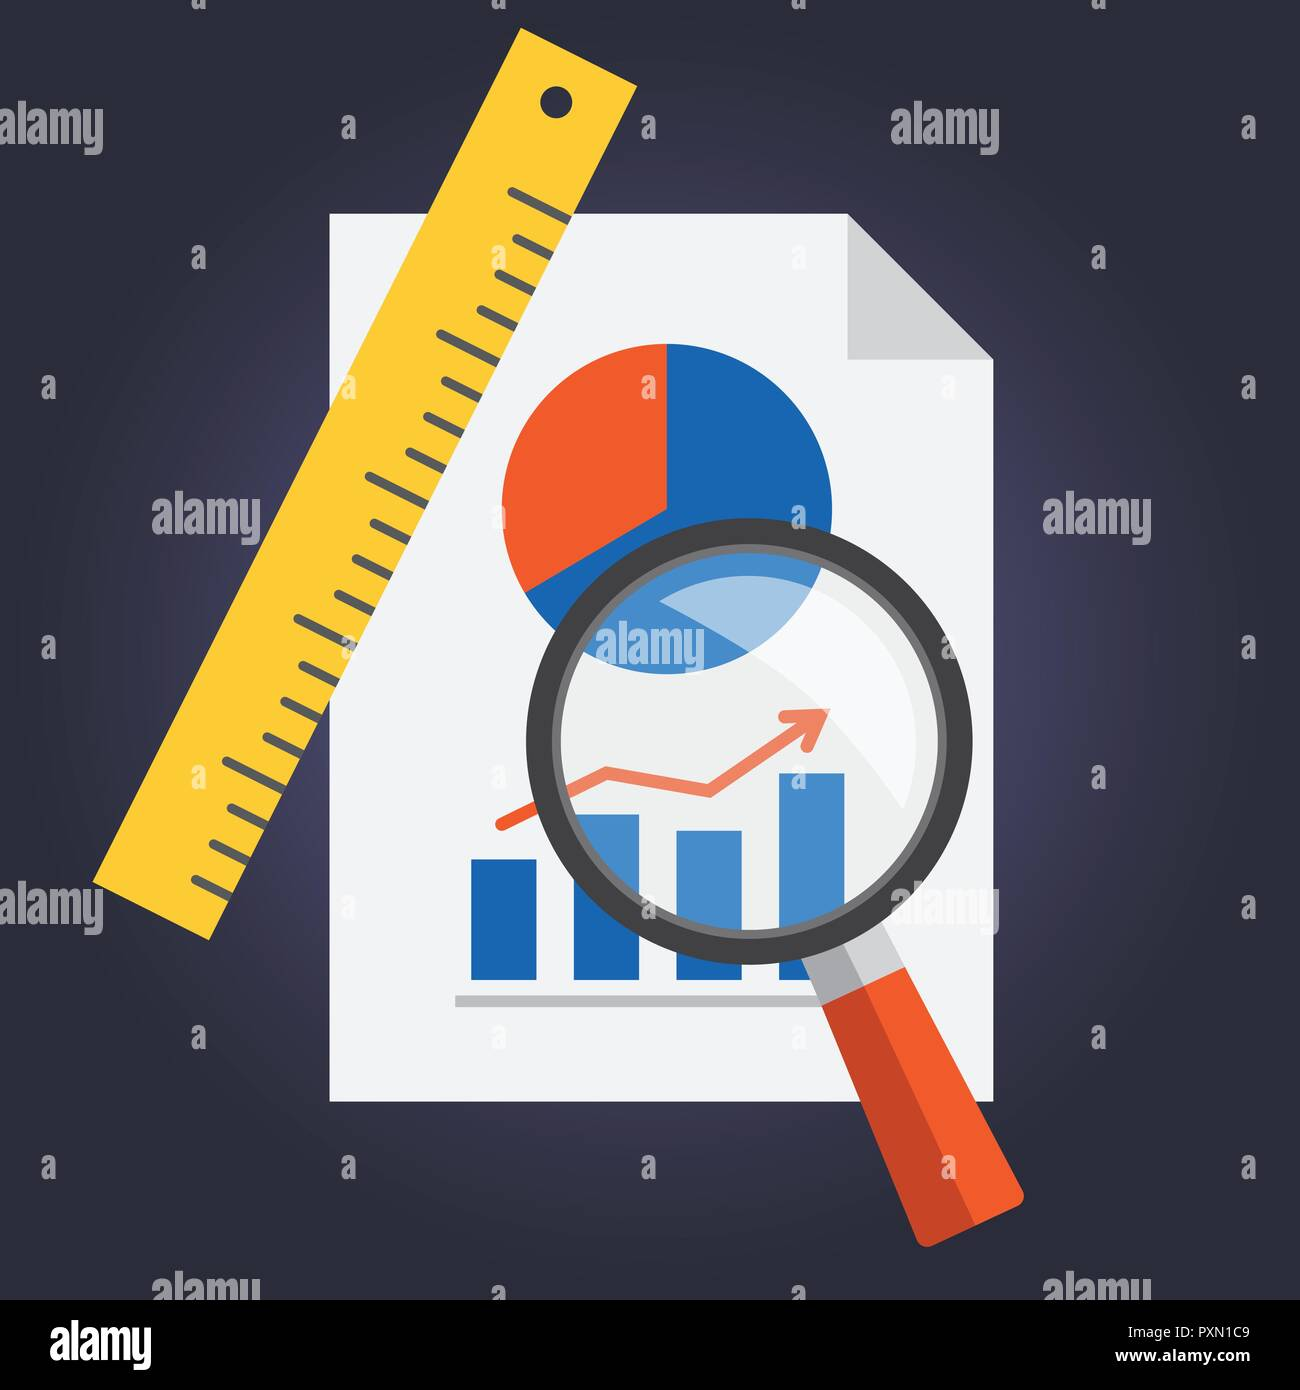 Conceptual project illustration in vector, flat design - Stock Vector